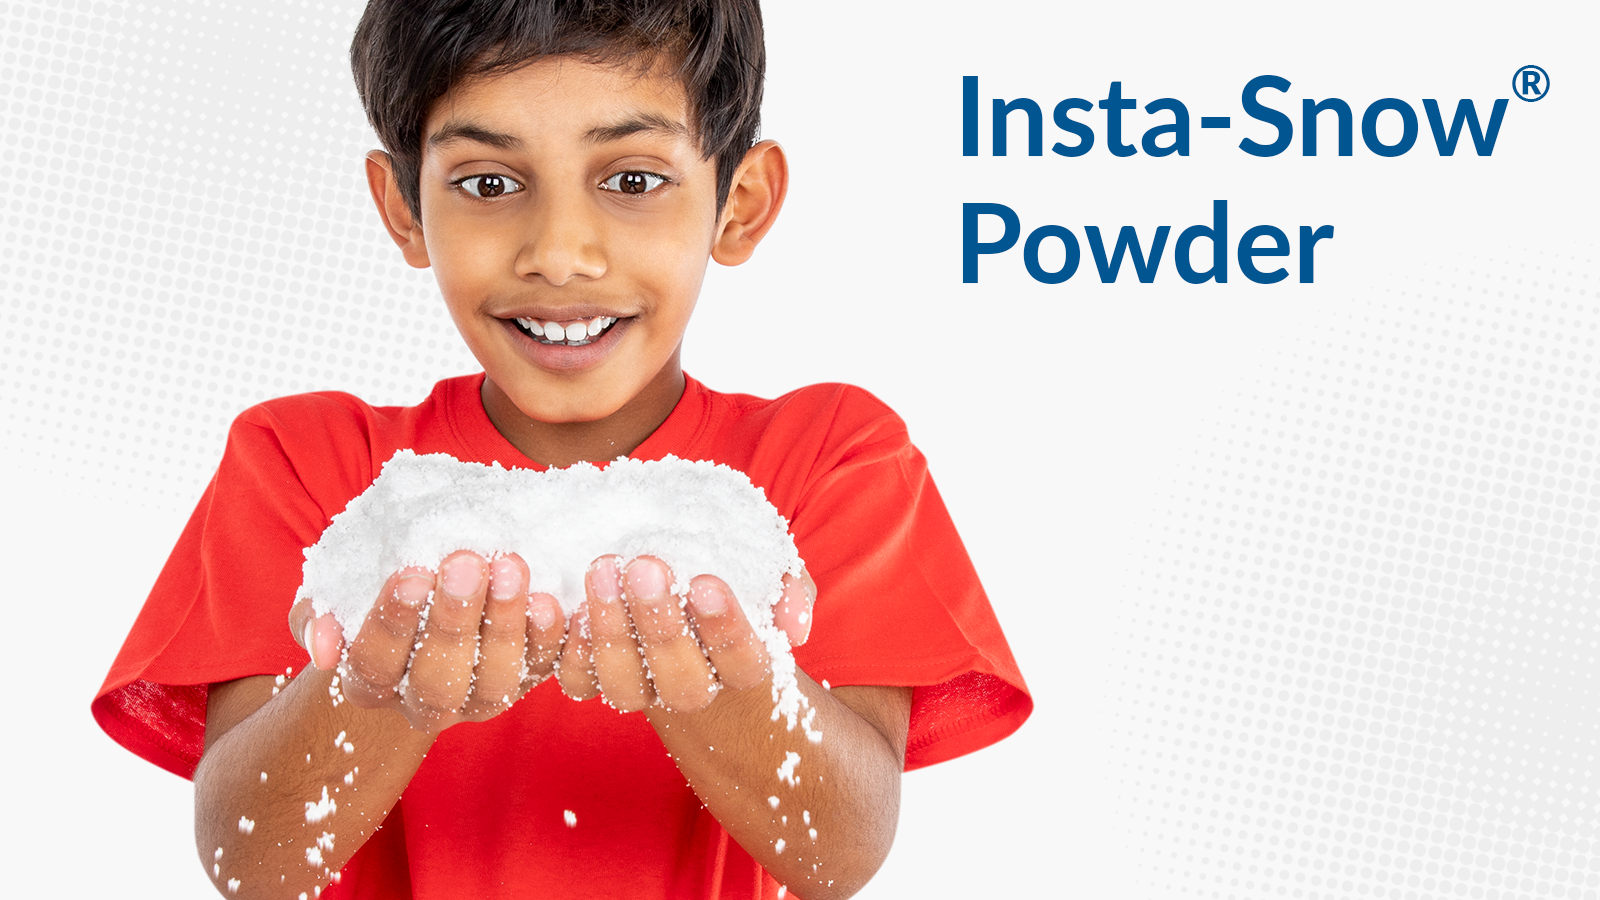 Insta-Snow® Powder